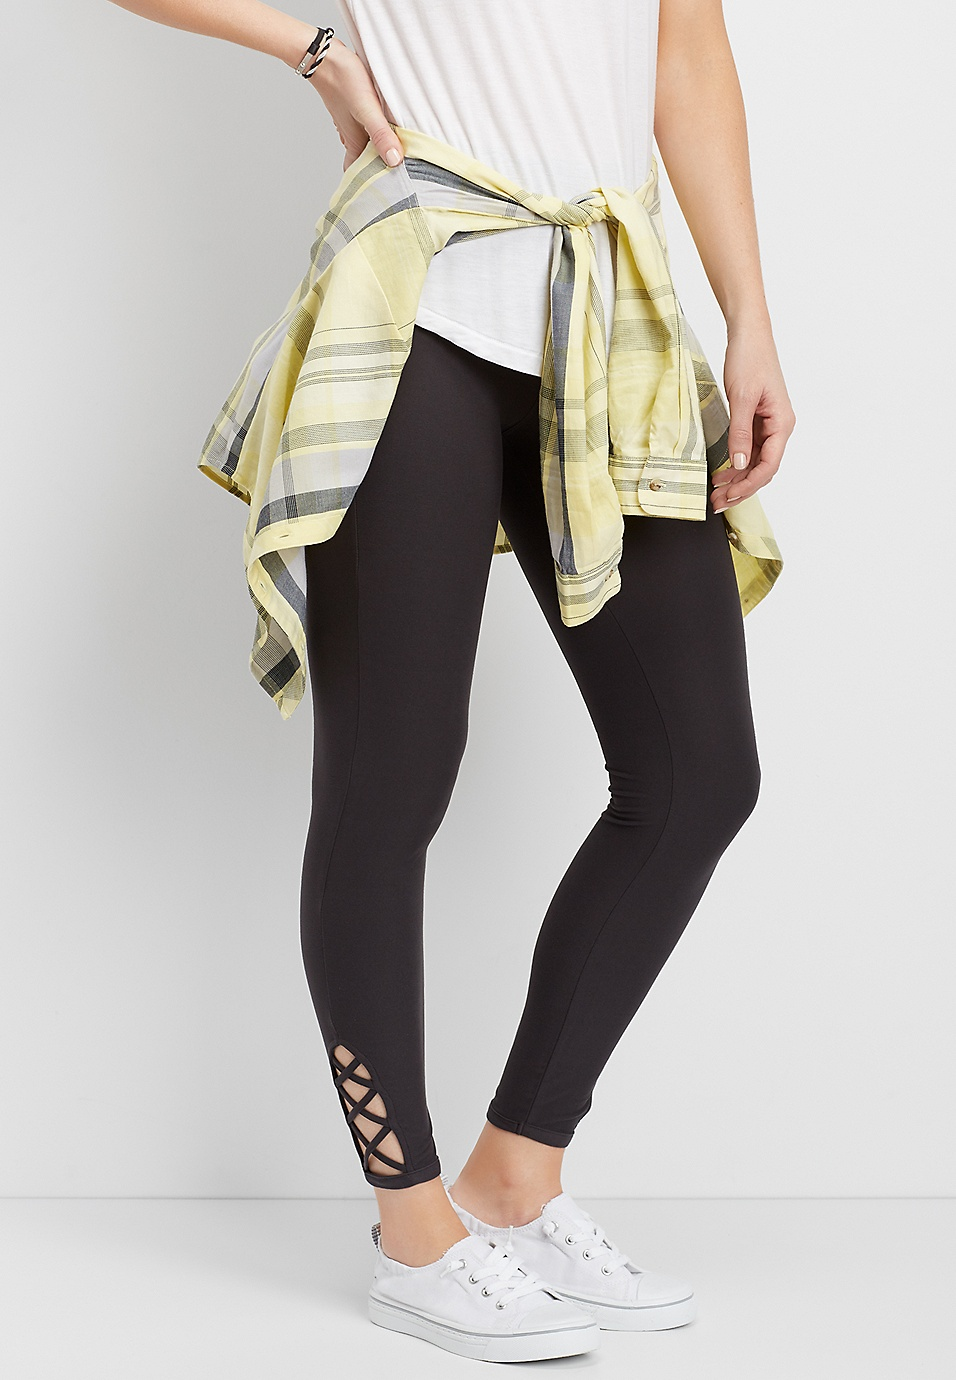 Ultra-Soft 7/8 Lattice Side Legging Maurices Clearance For Sale Free Shipping Deals Big Sale m75uac